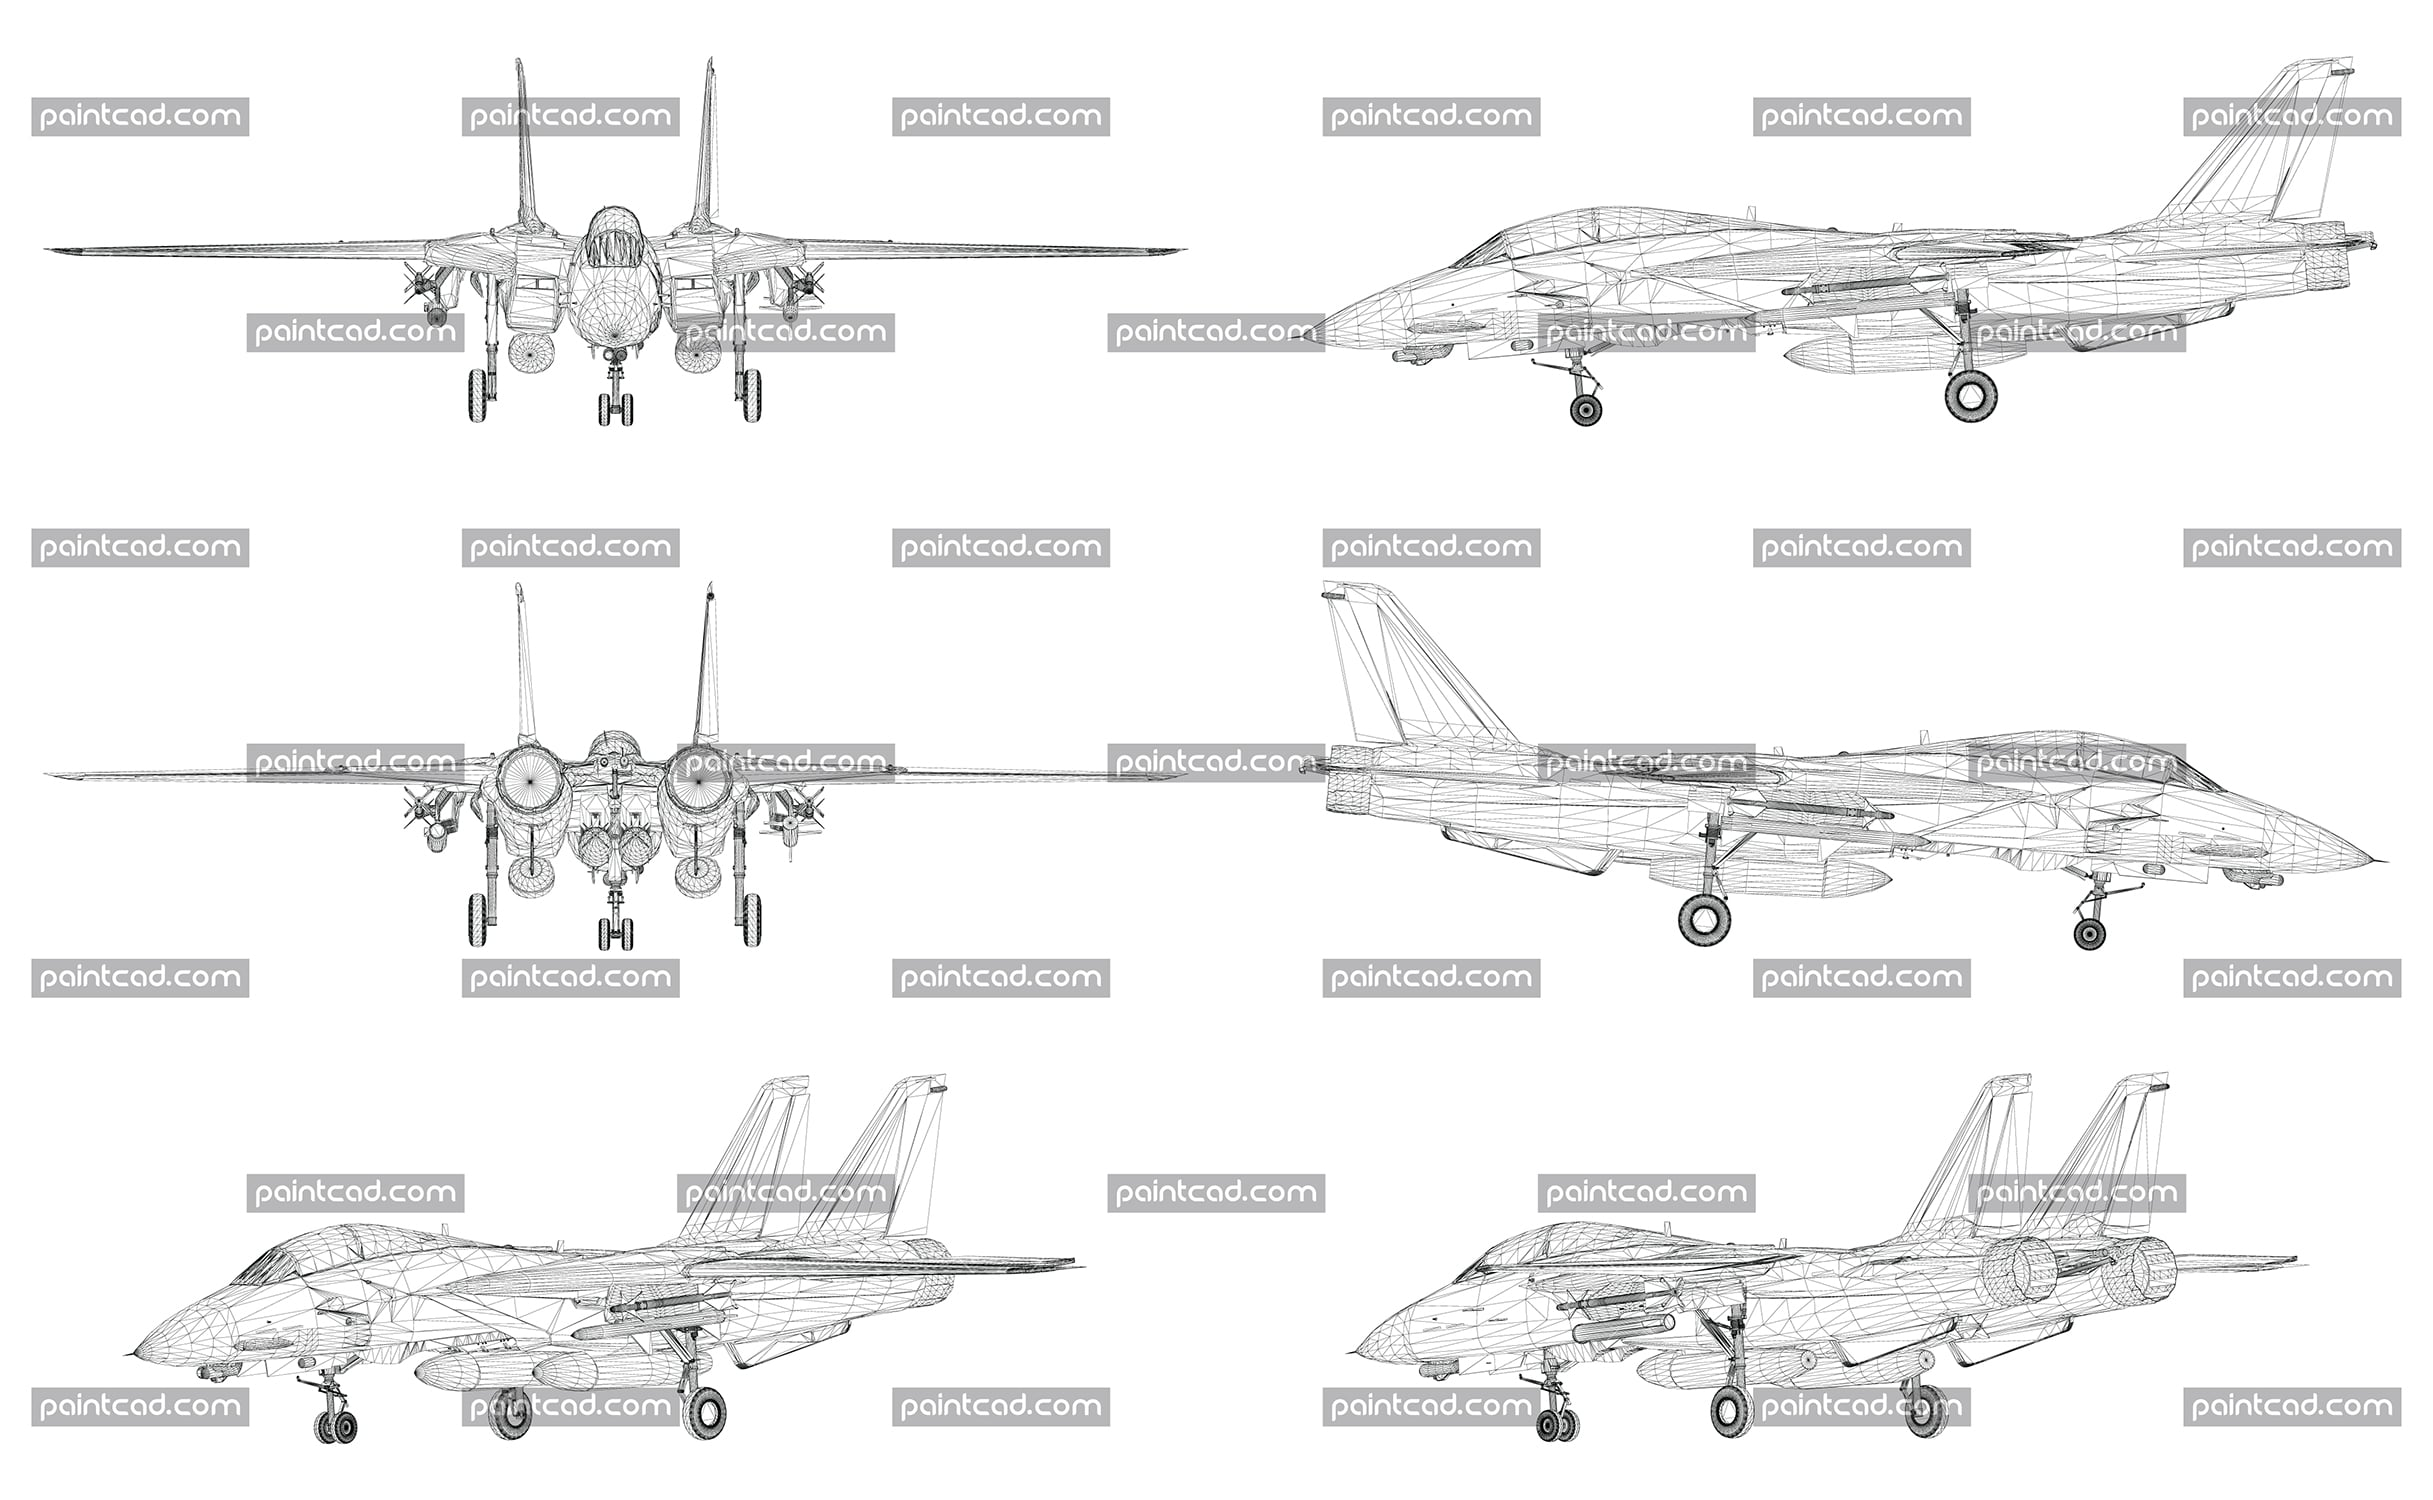 Wireframe design of modern combat fighter aircraft - vector illustration